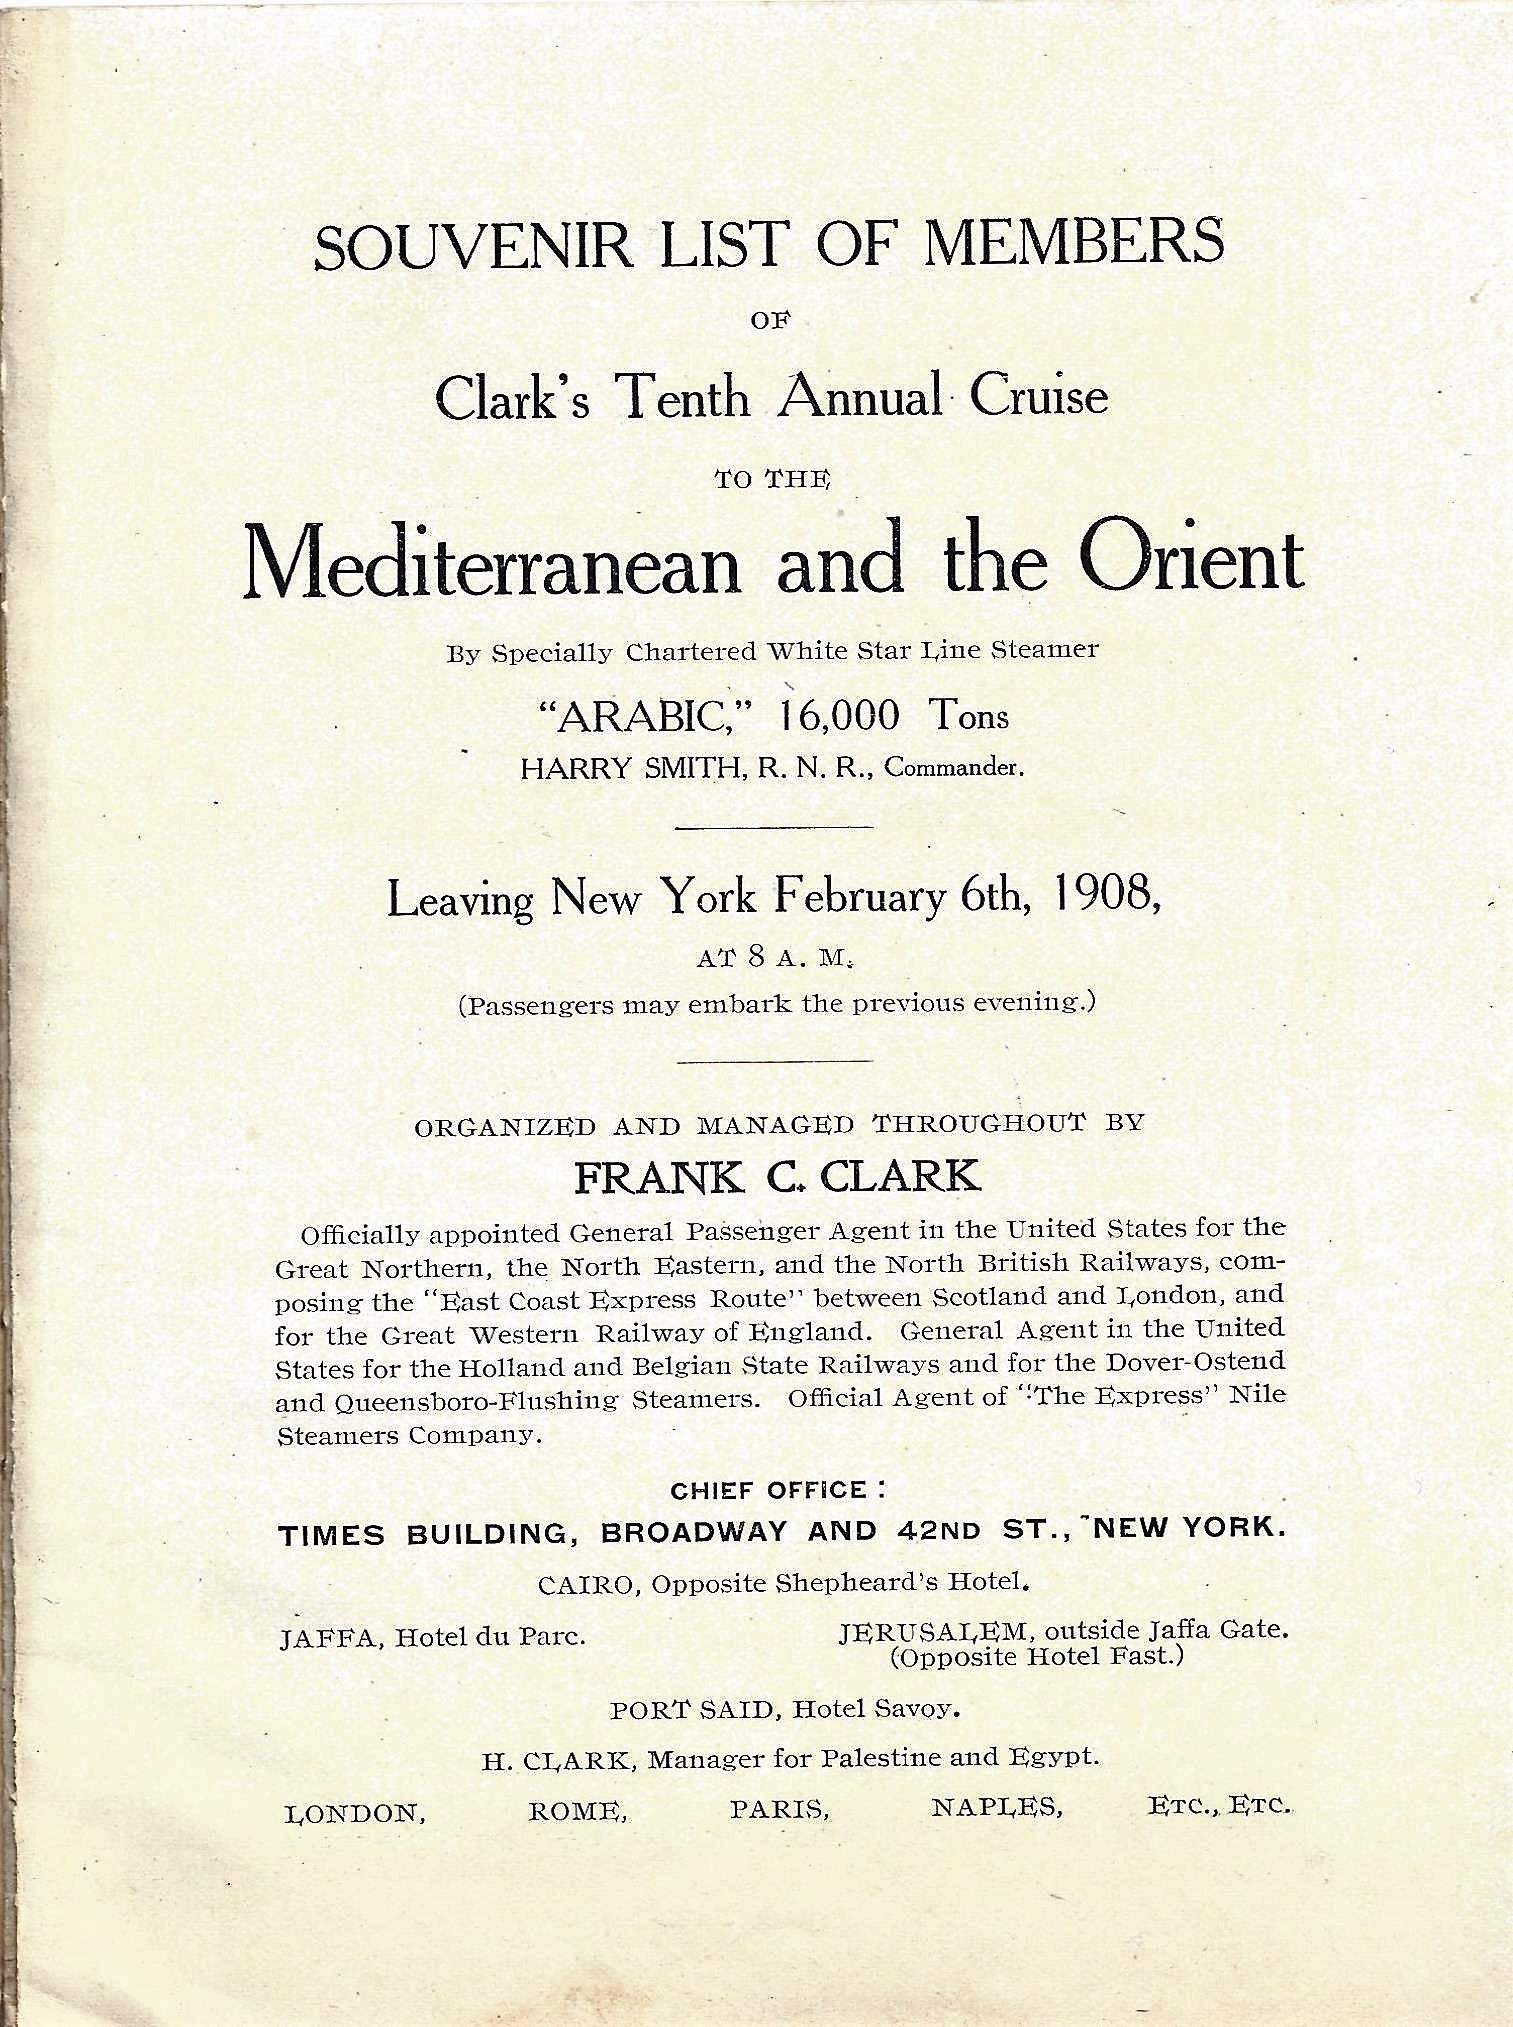 Clark's tenth annual cruise to the Mediterannean and the Orient, 1908 (title page)